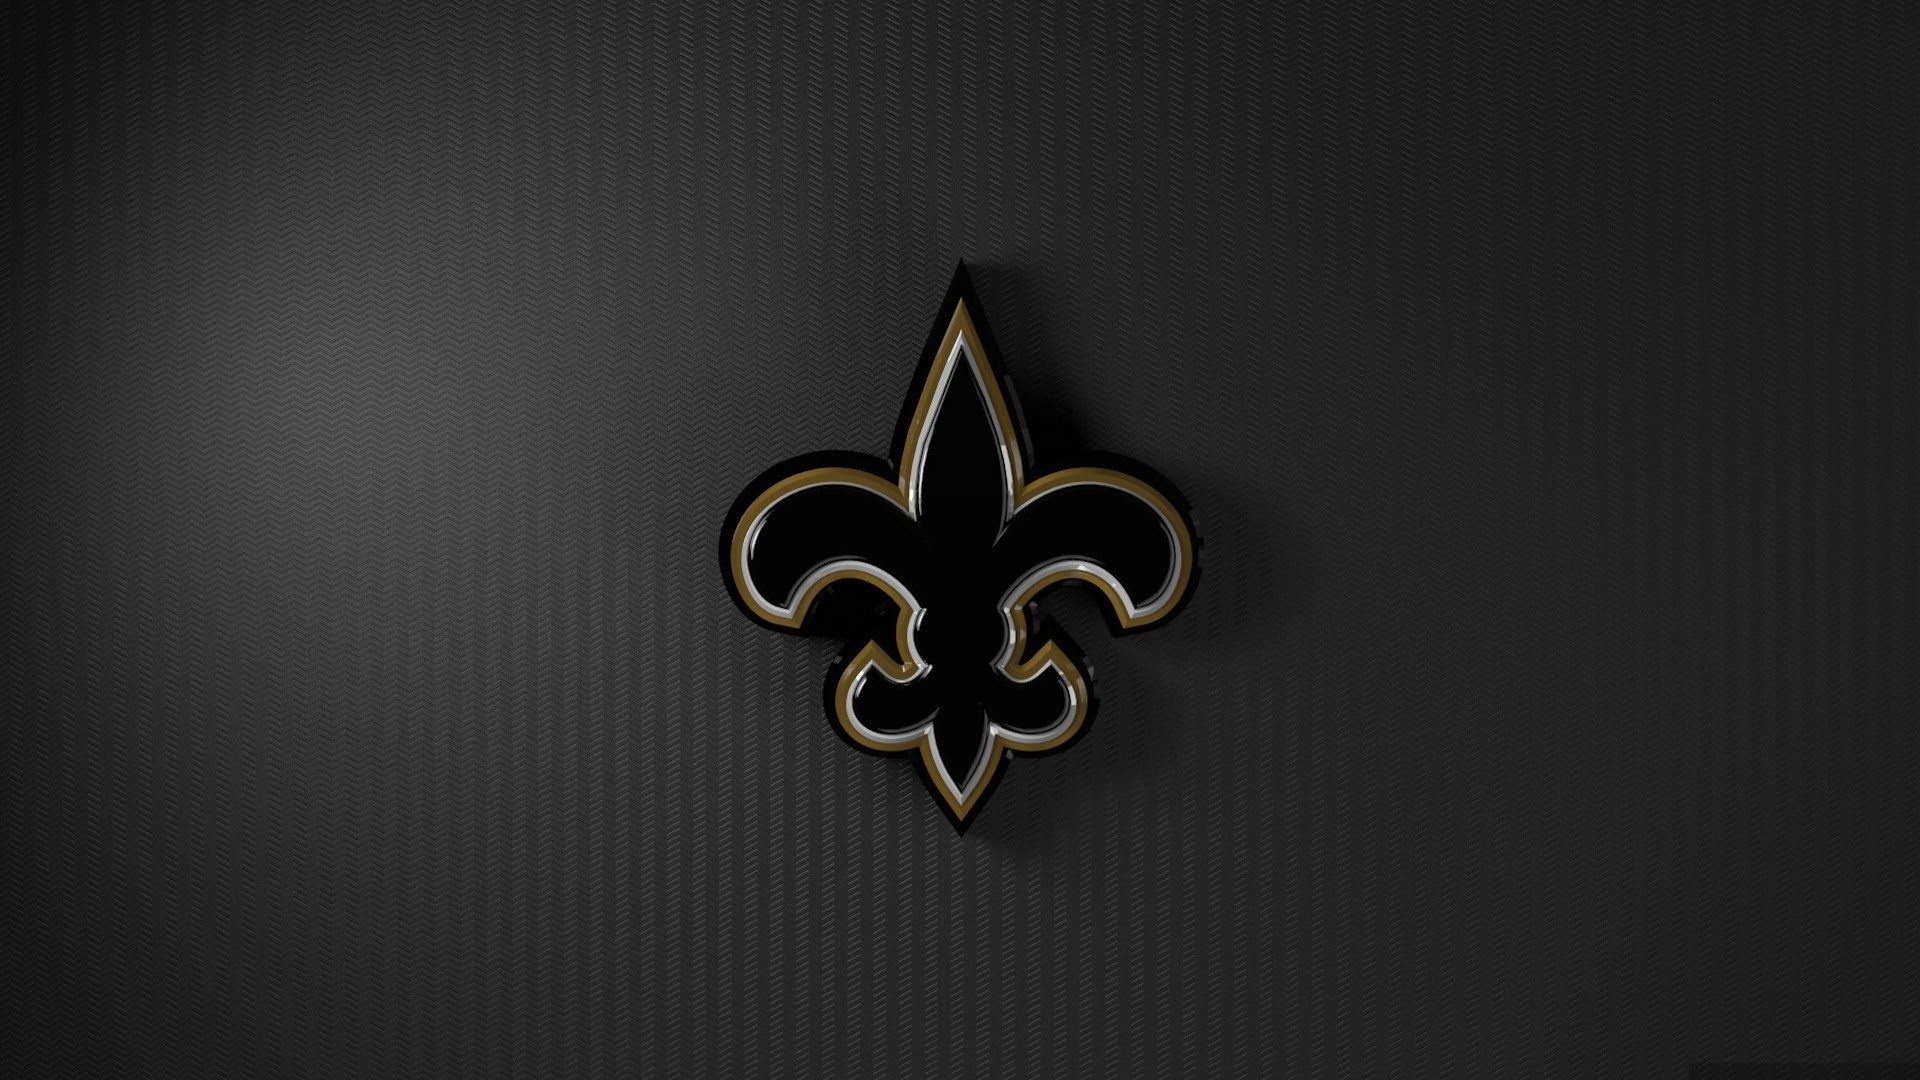 Saints Wallpaper and Background